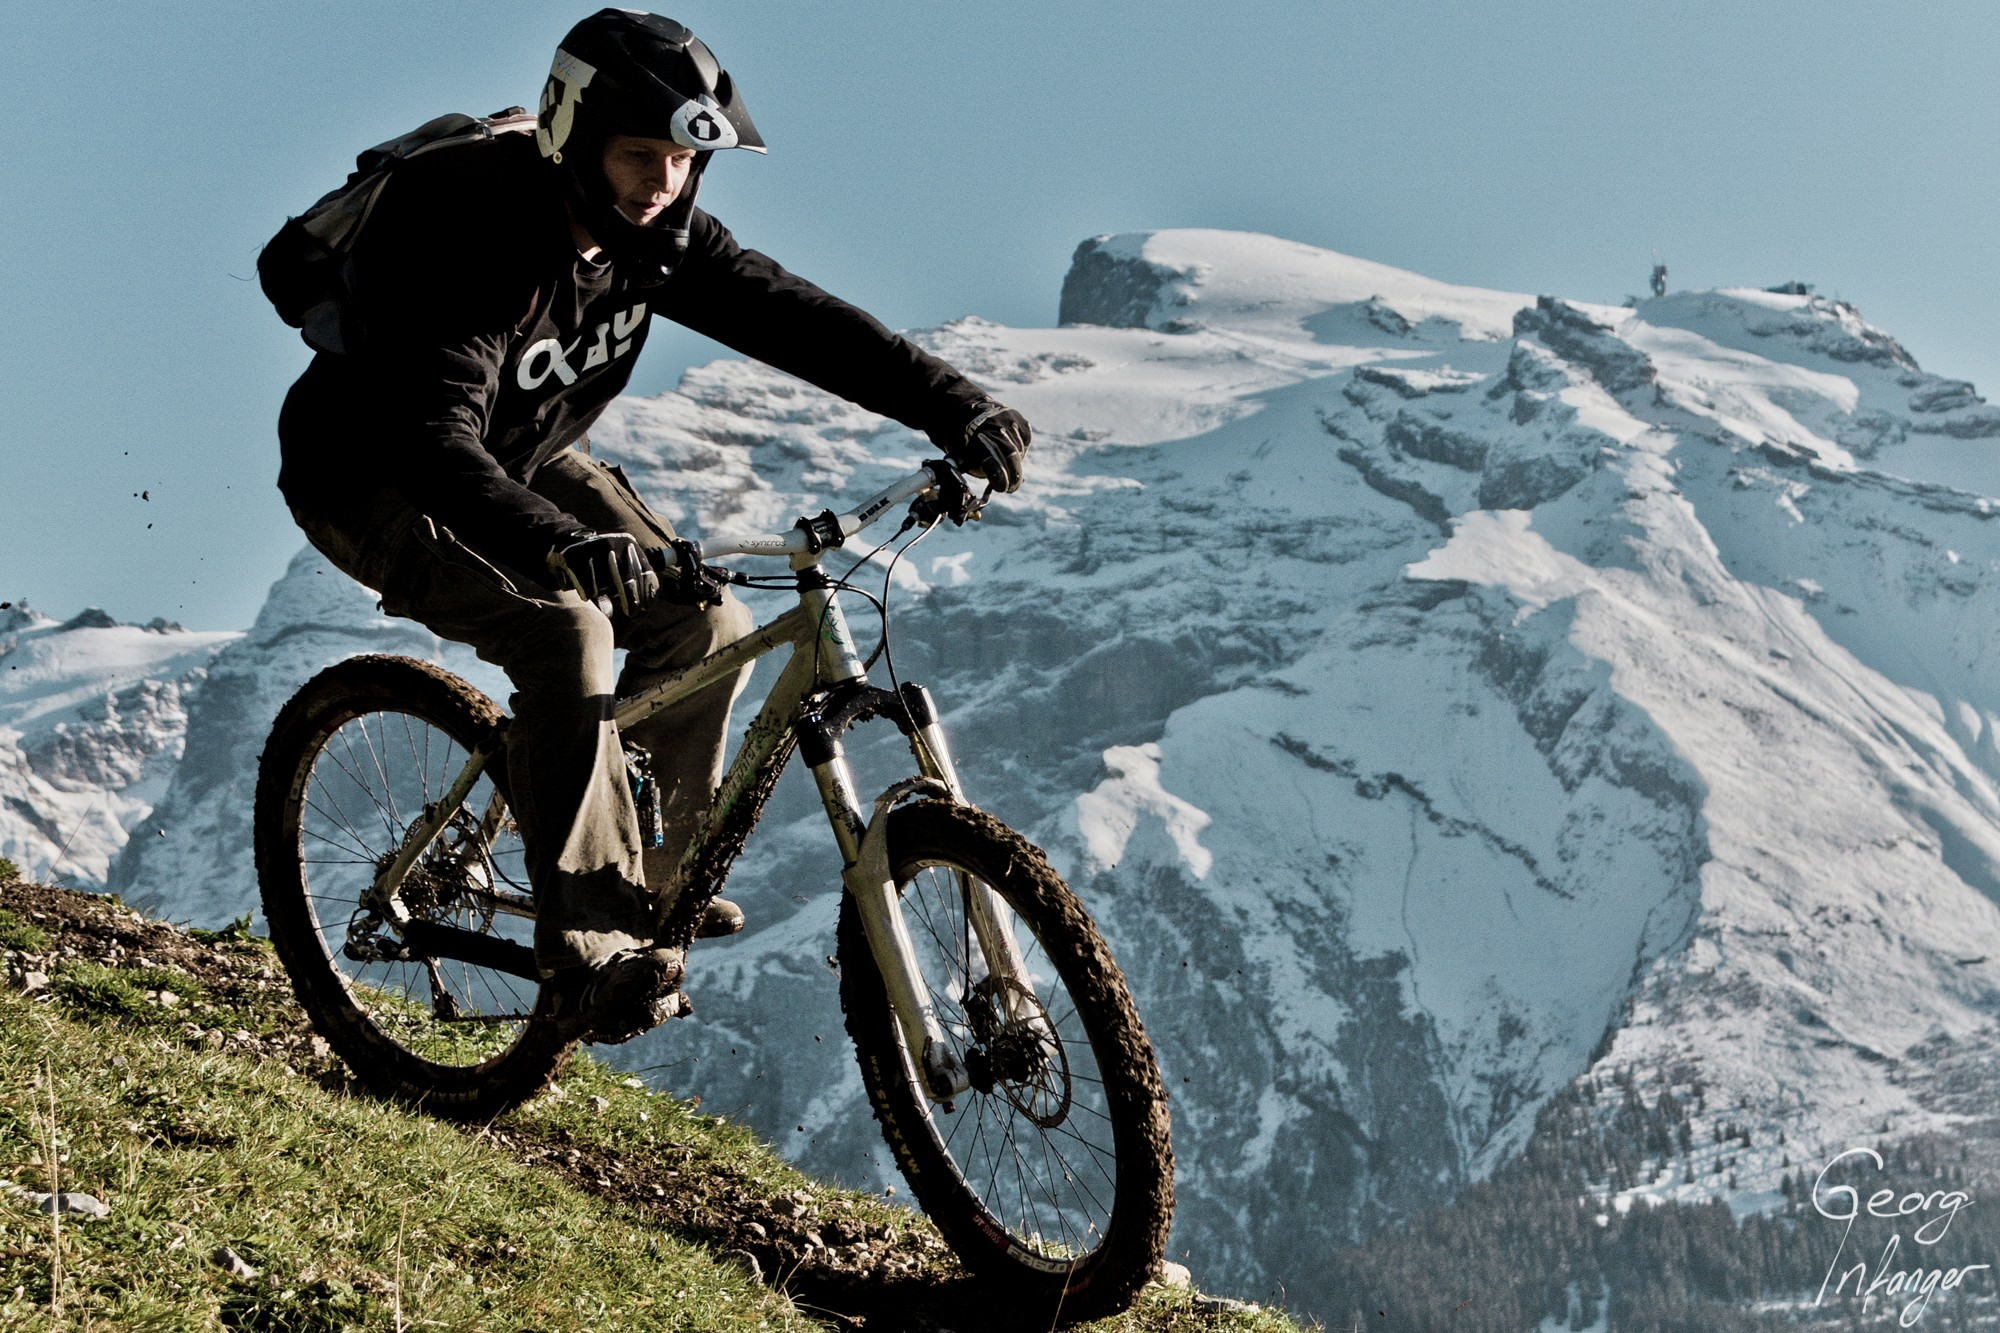 Beat Barmettler in Engelberg-beat barmettler biking downhill herbst titlis